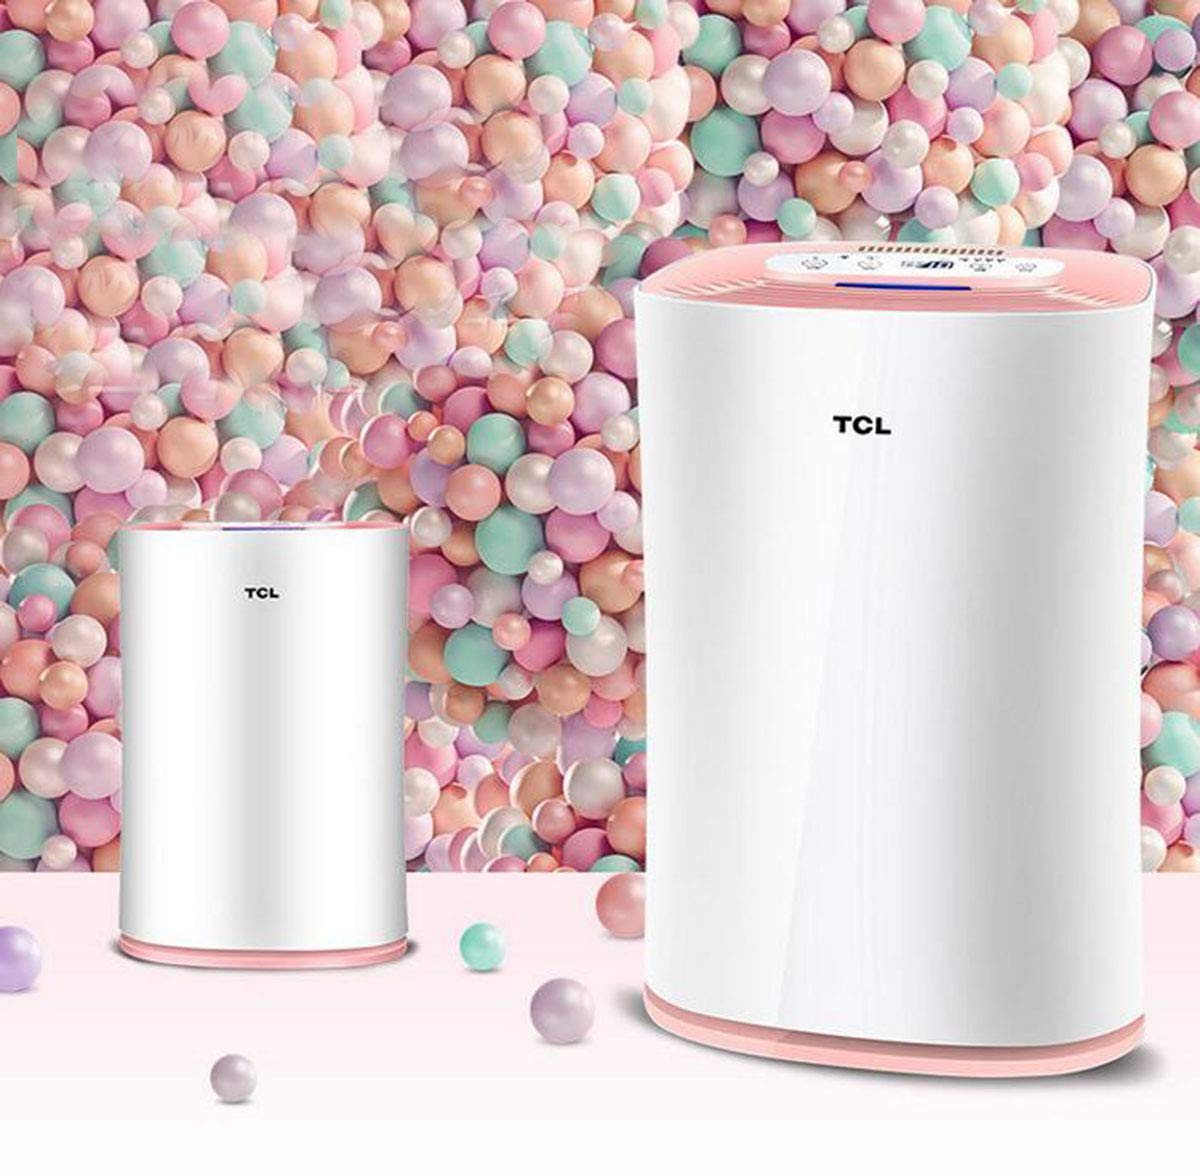 71PSaAwM5jL - TCLTKJ303F-S1 Smart Purifier Household In Addition To Formaldehyde PM2.5 Negative Ion Humidifier